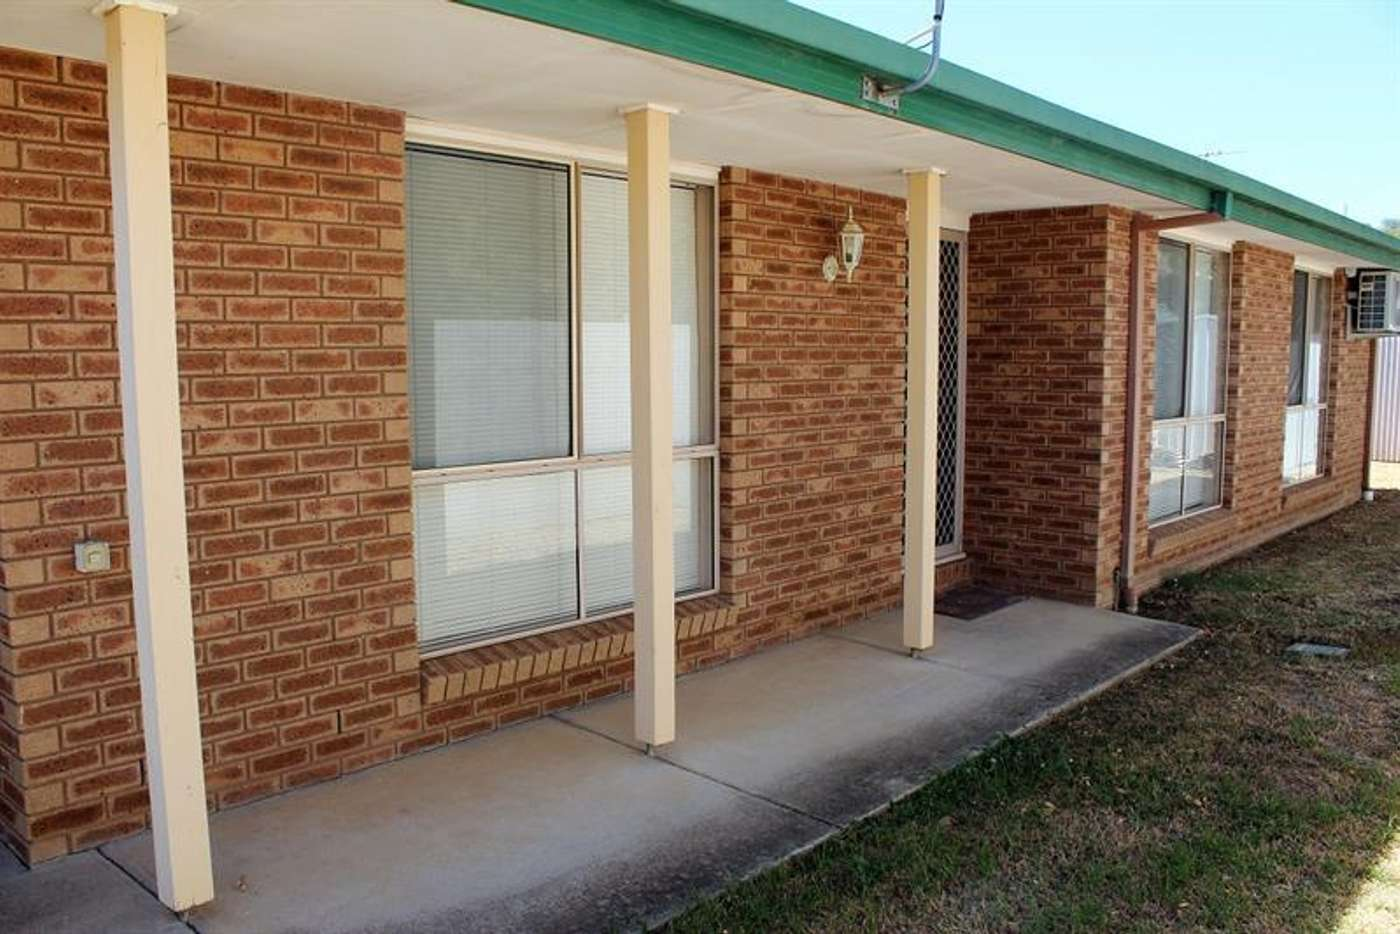 Main view of Homely house listing, 4 Sturtvale Ct, West Albury NSW 2640